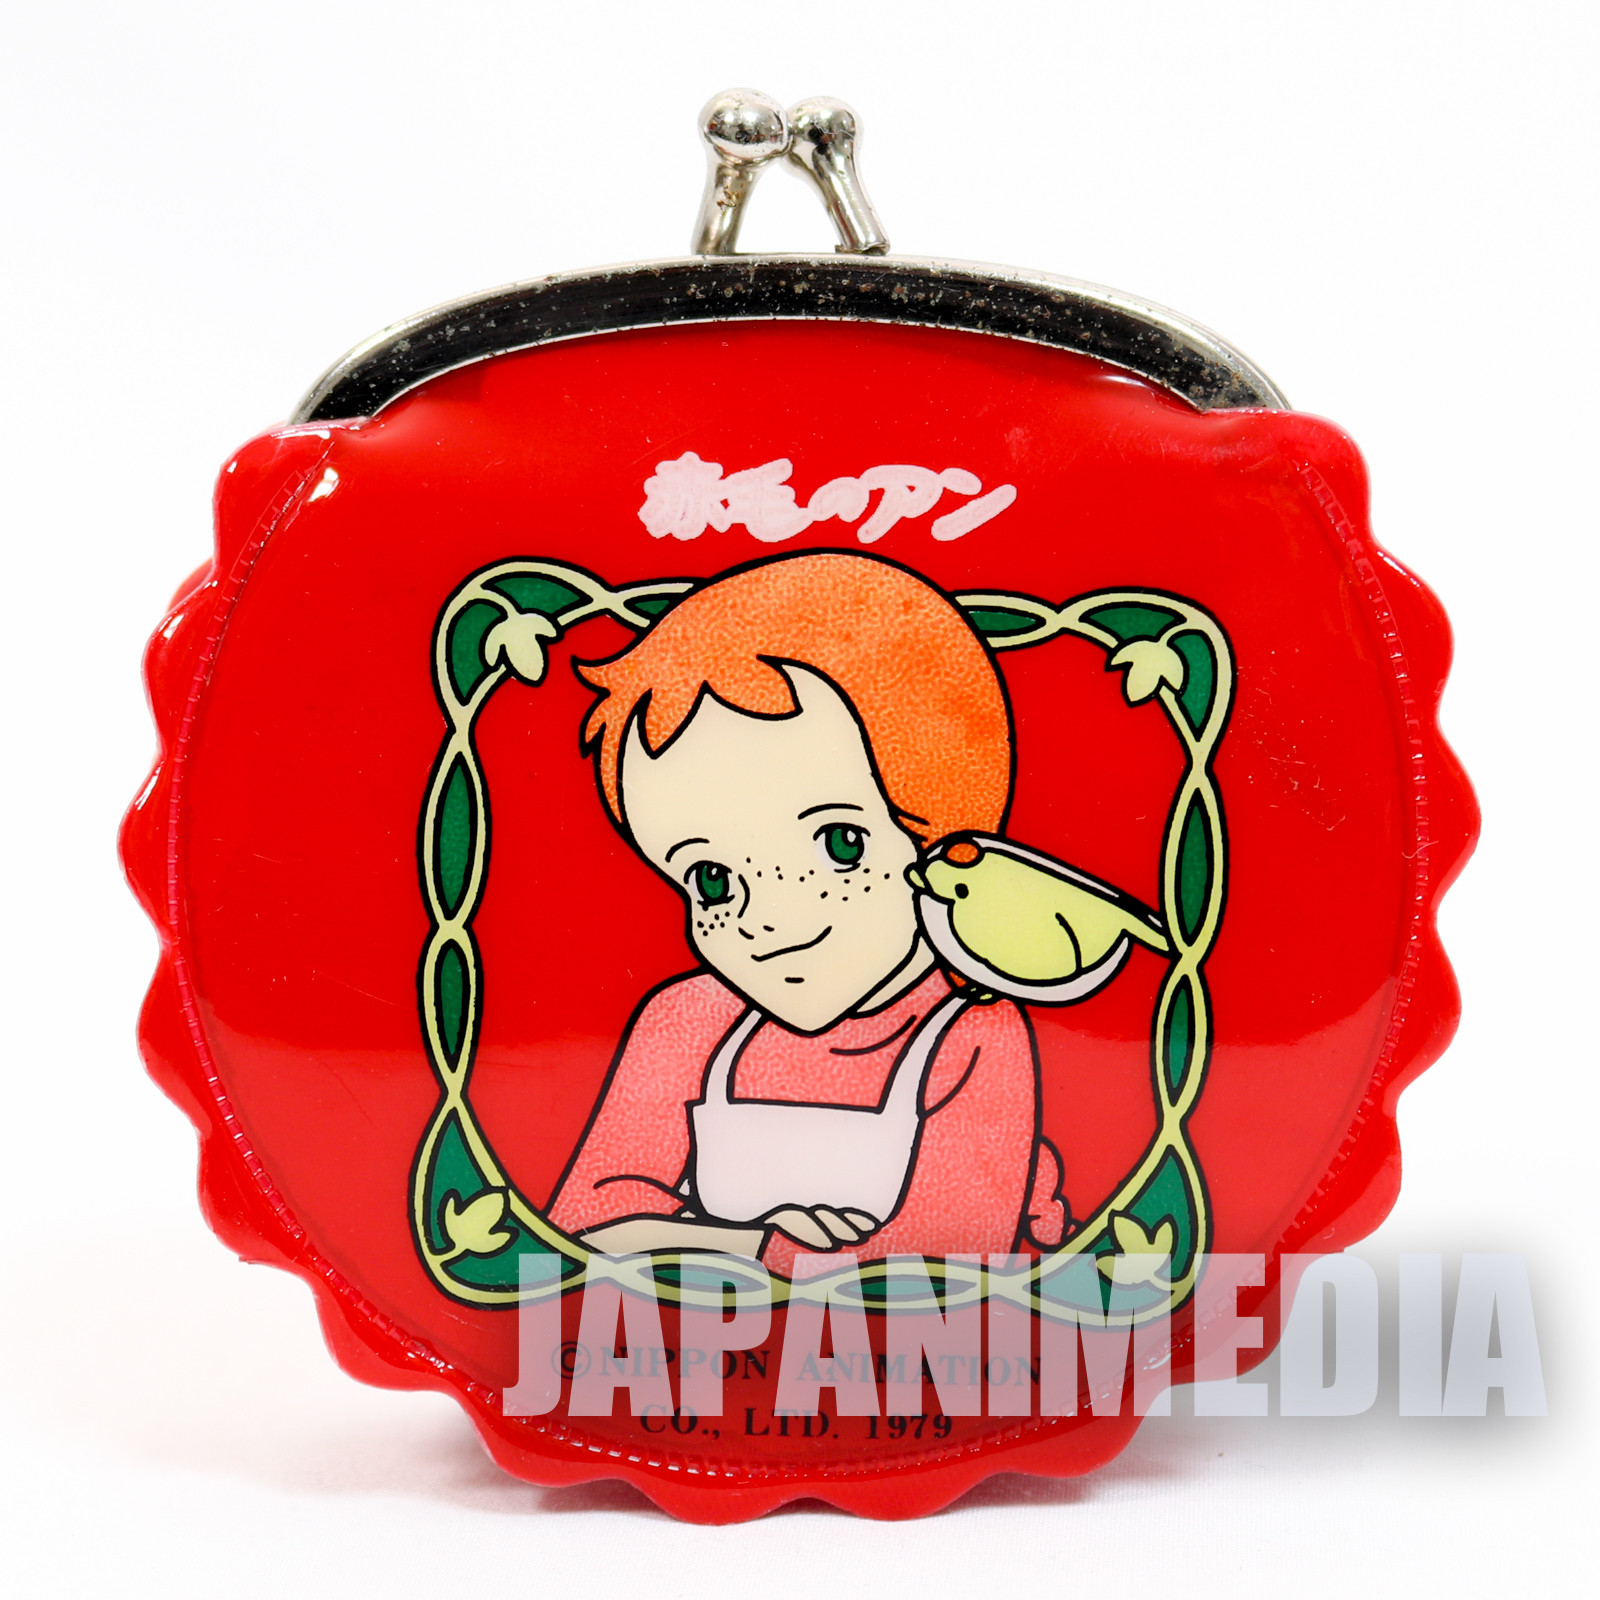 Retro! Anne of Green Gables Purse with a Clasp Coin Case Red #4 JAPAN ANIME